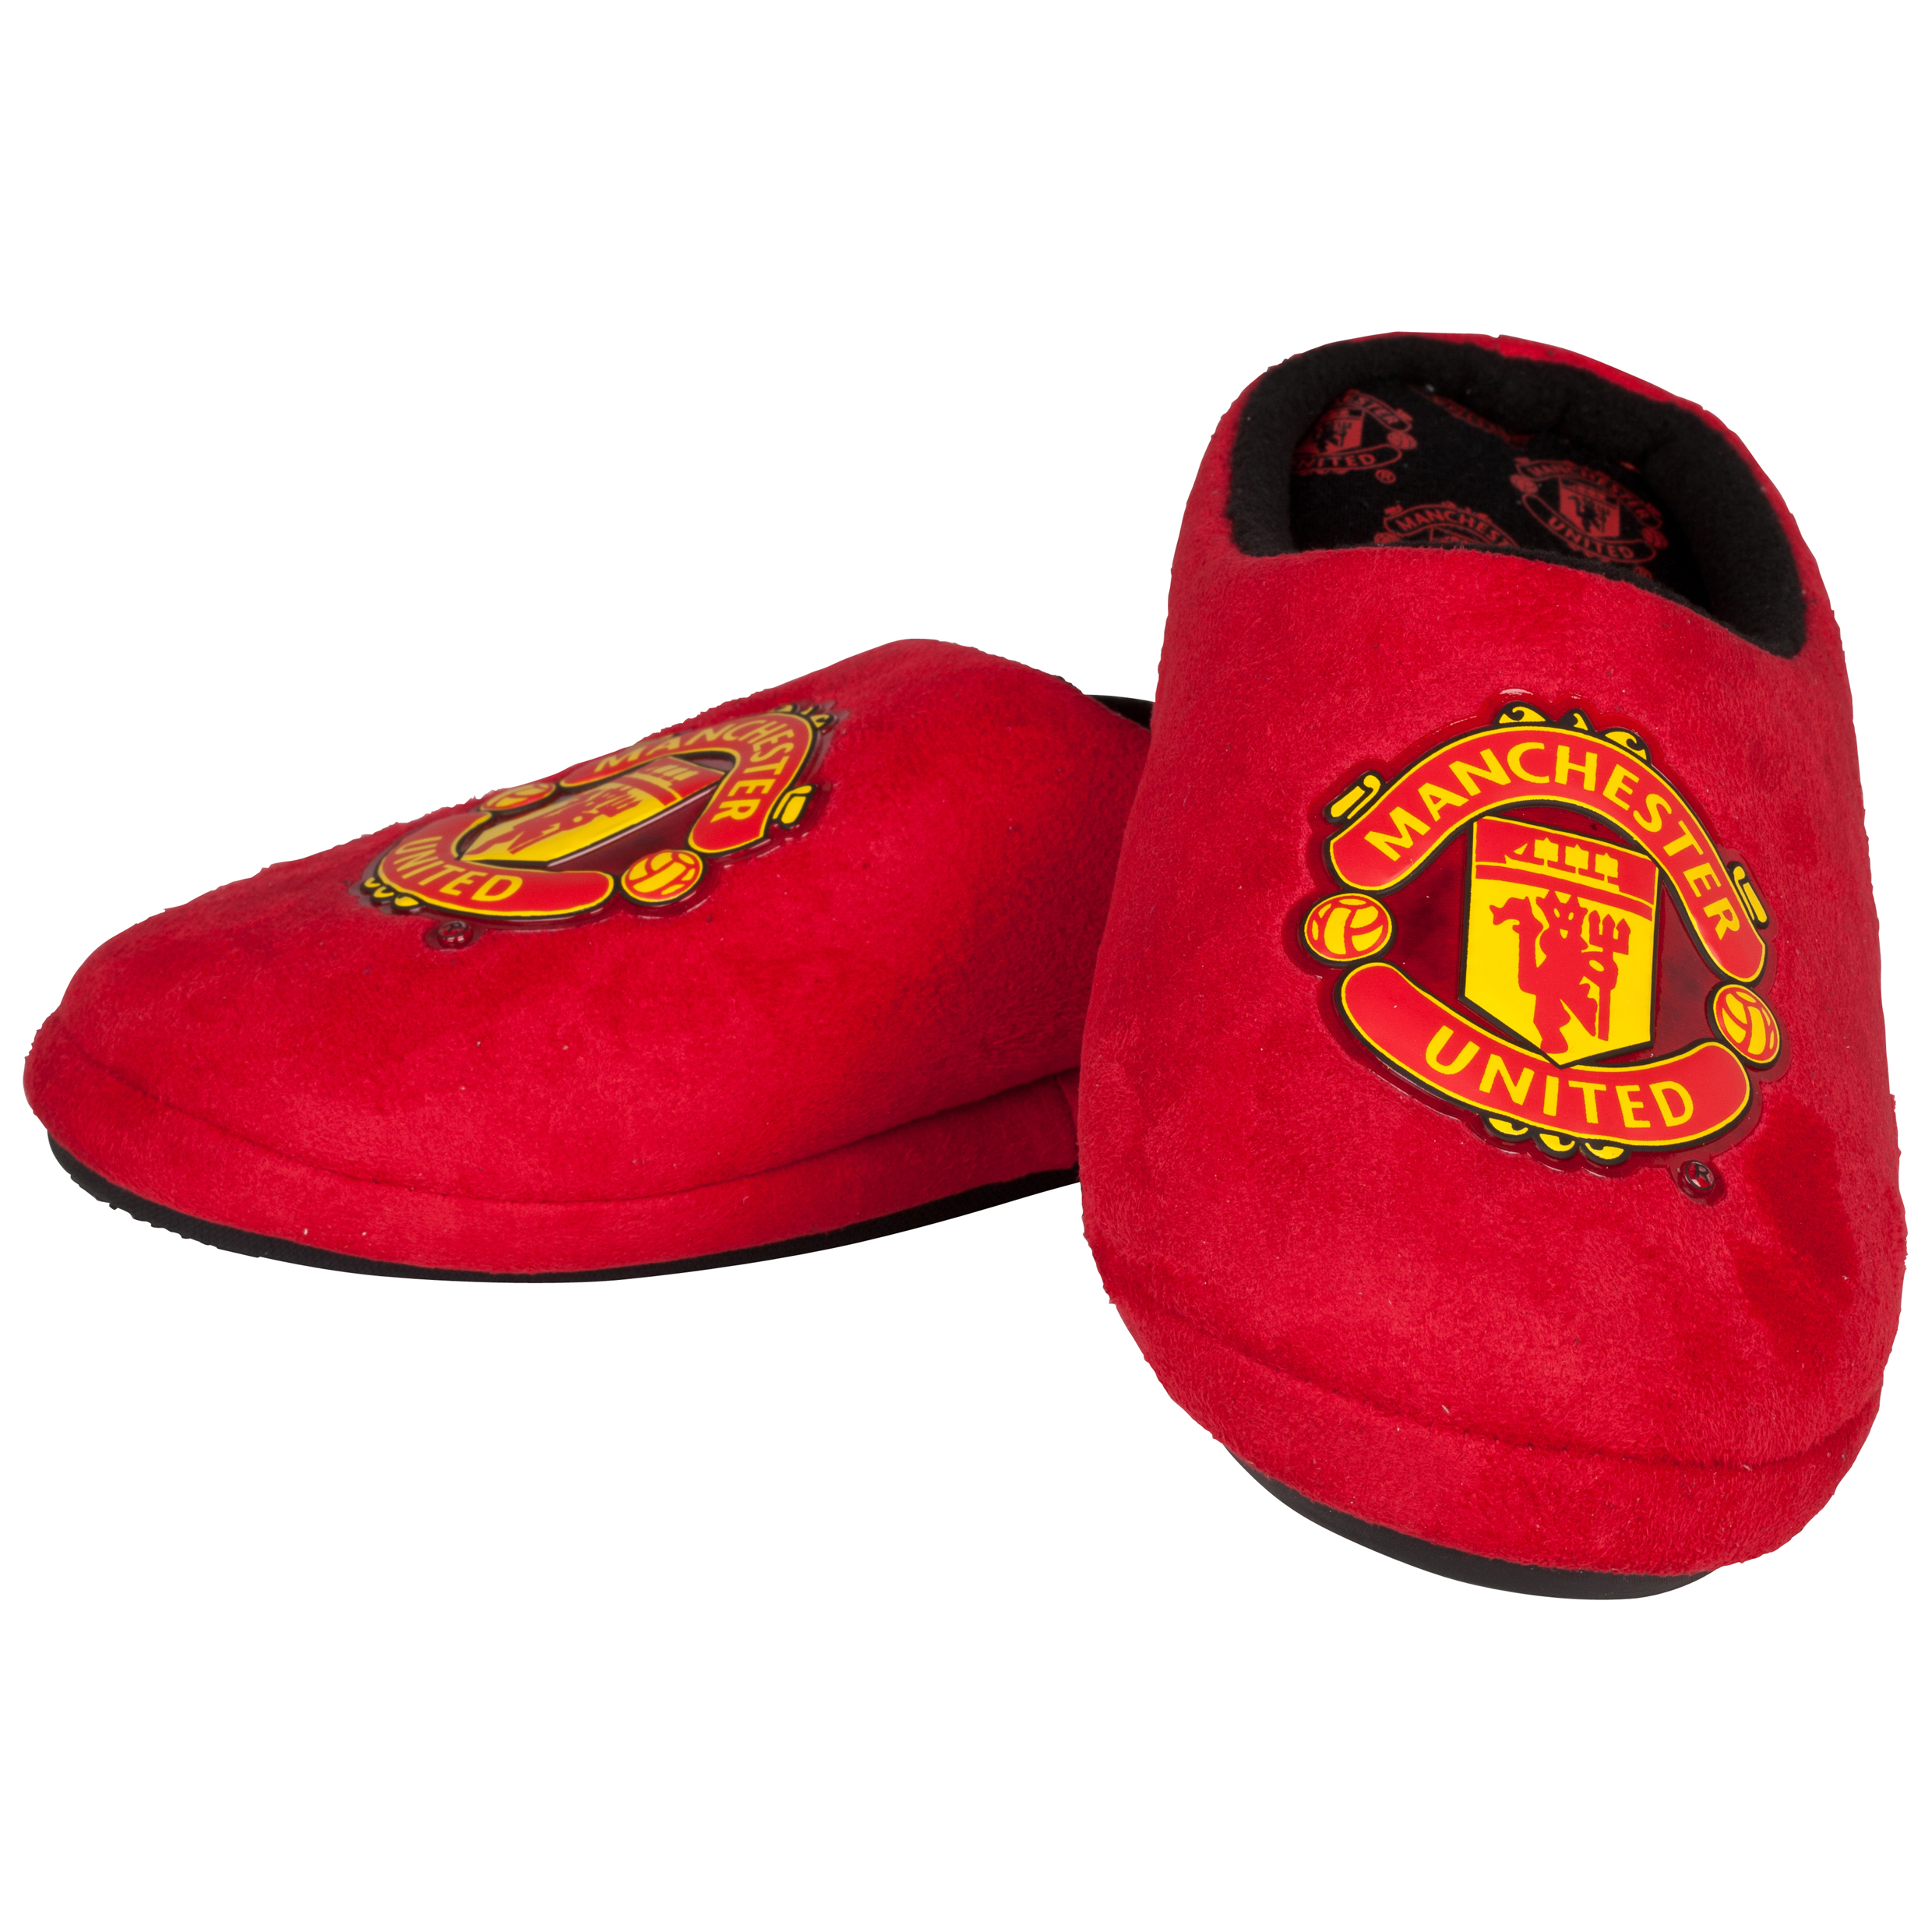 Manchester United Defender Crest Slipper - Red/Black - Boys